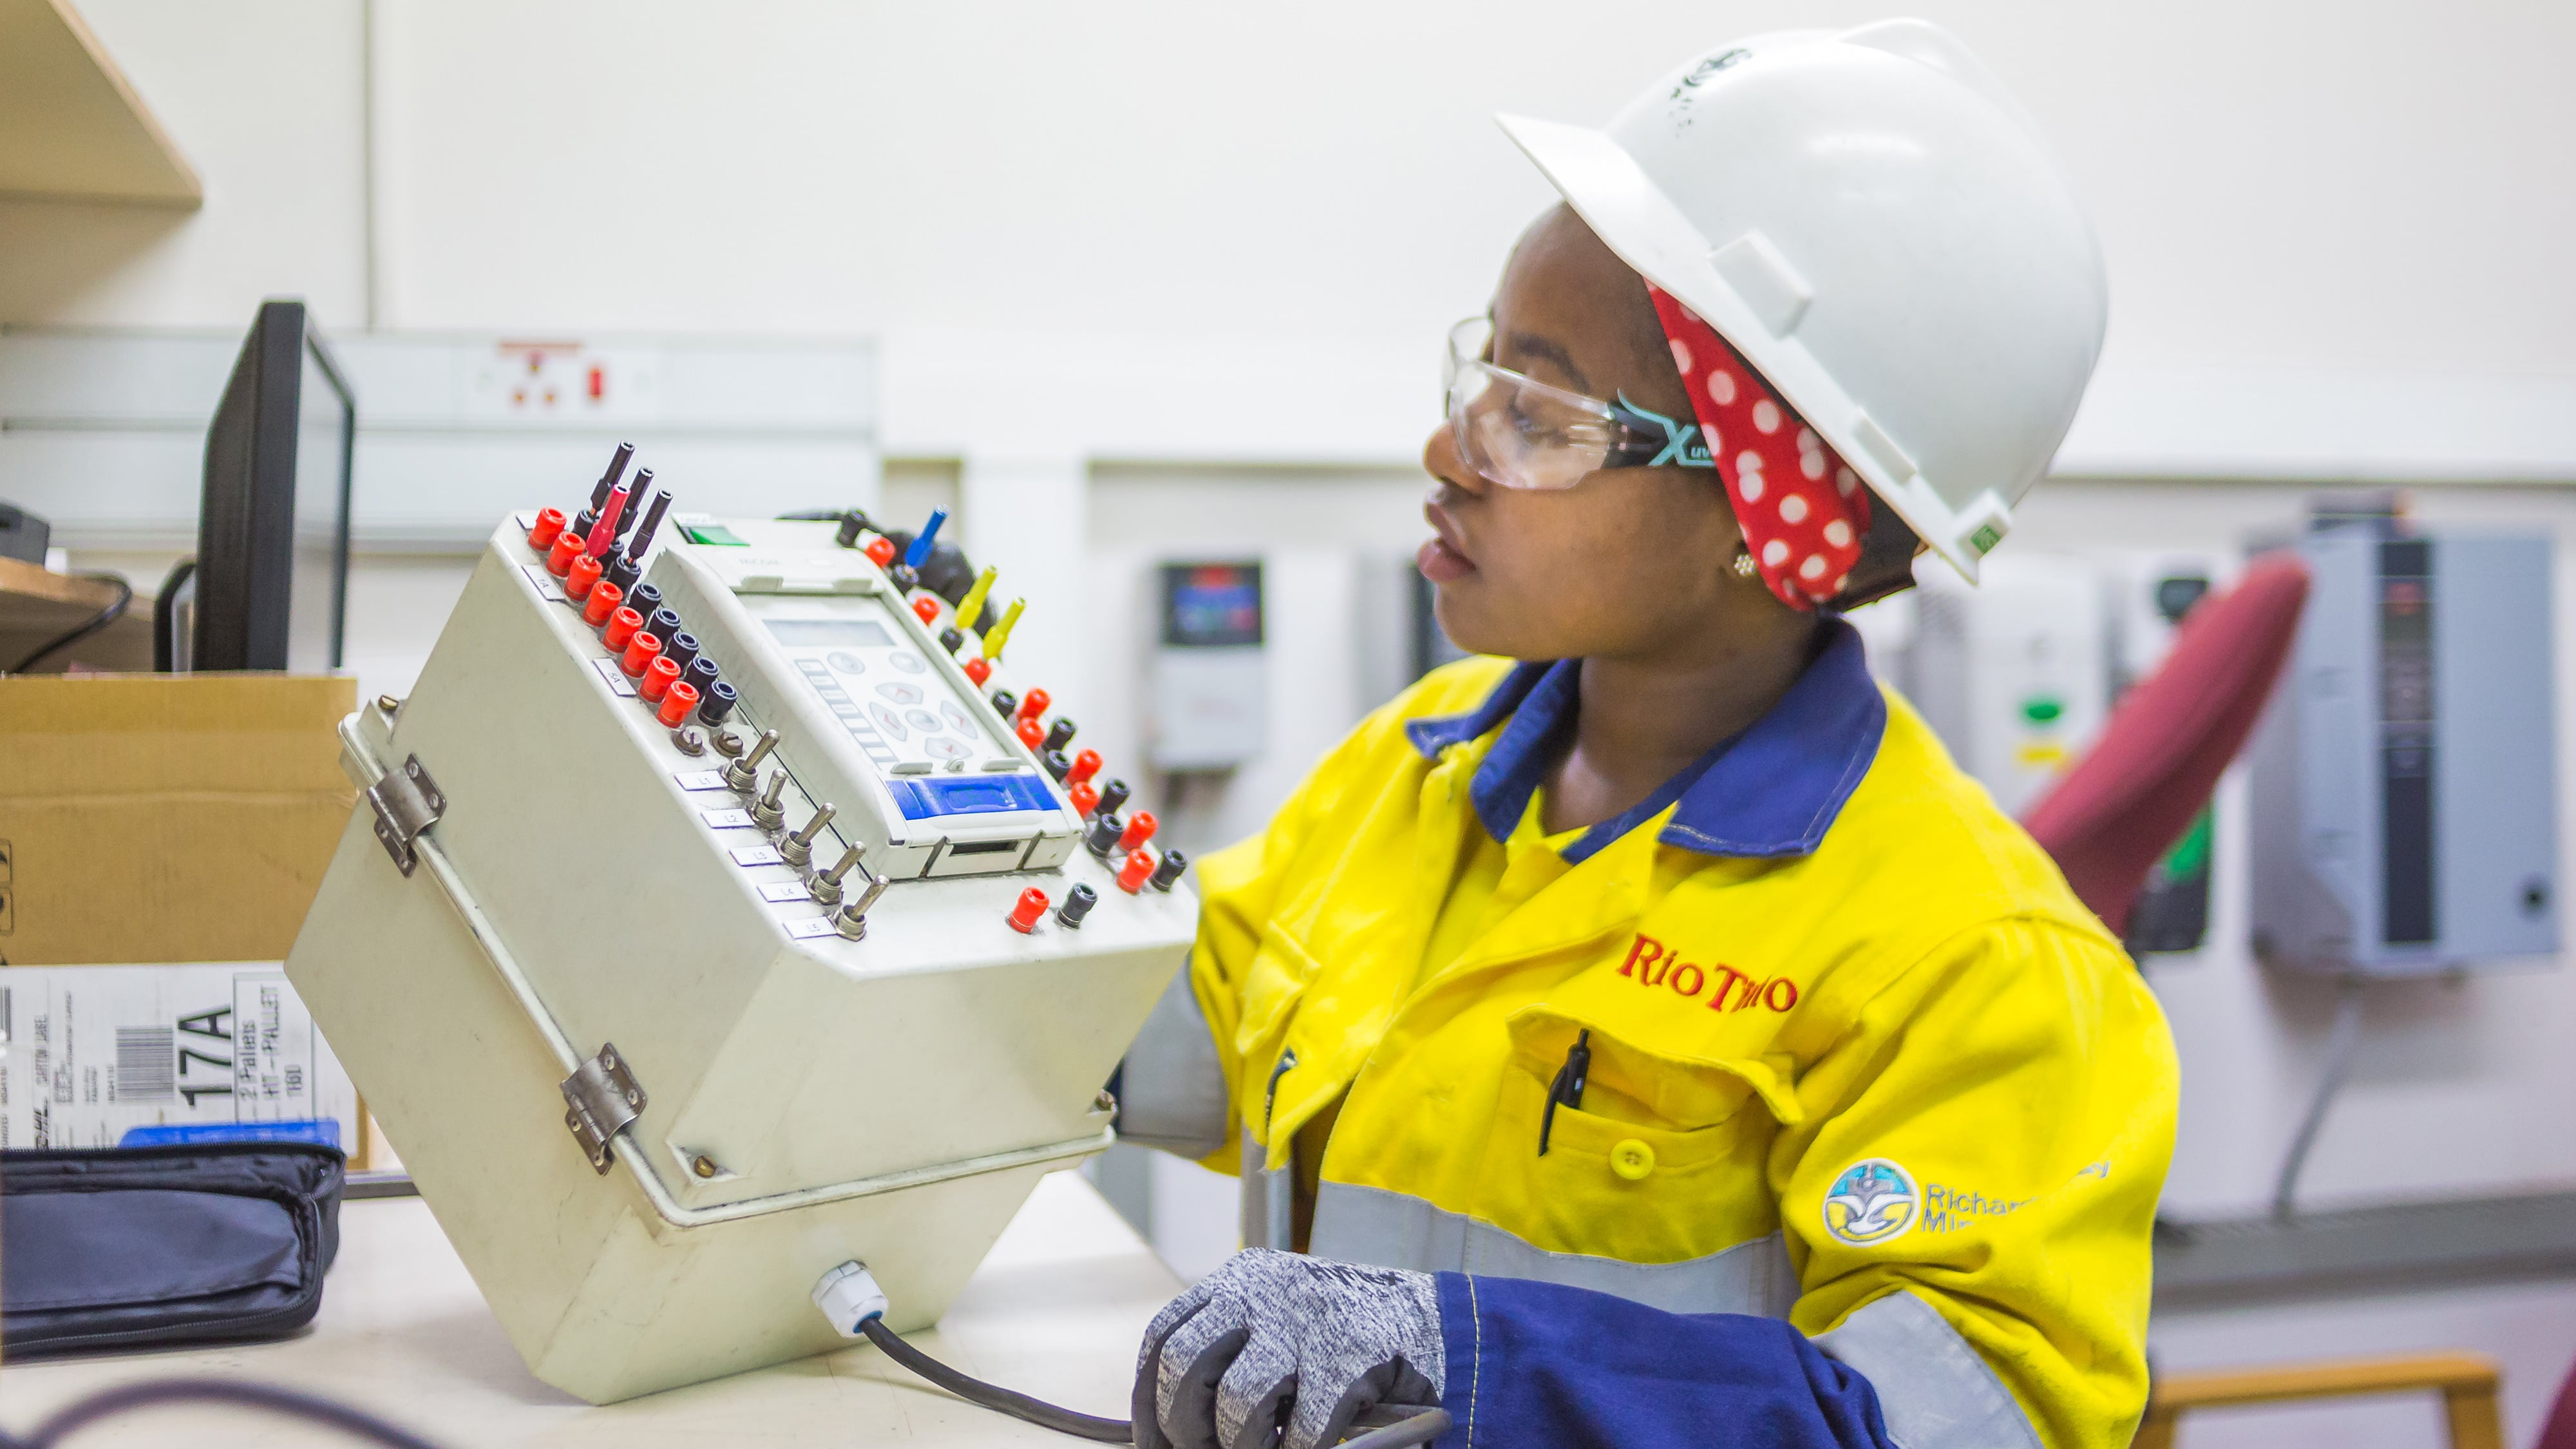 Technical work at Richards Bay Minerals